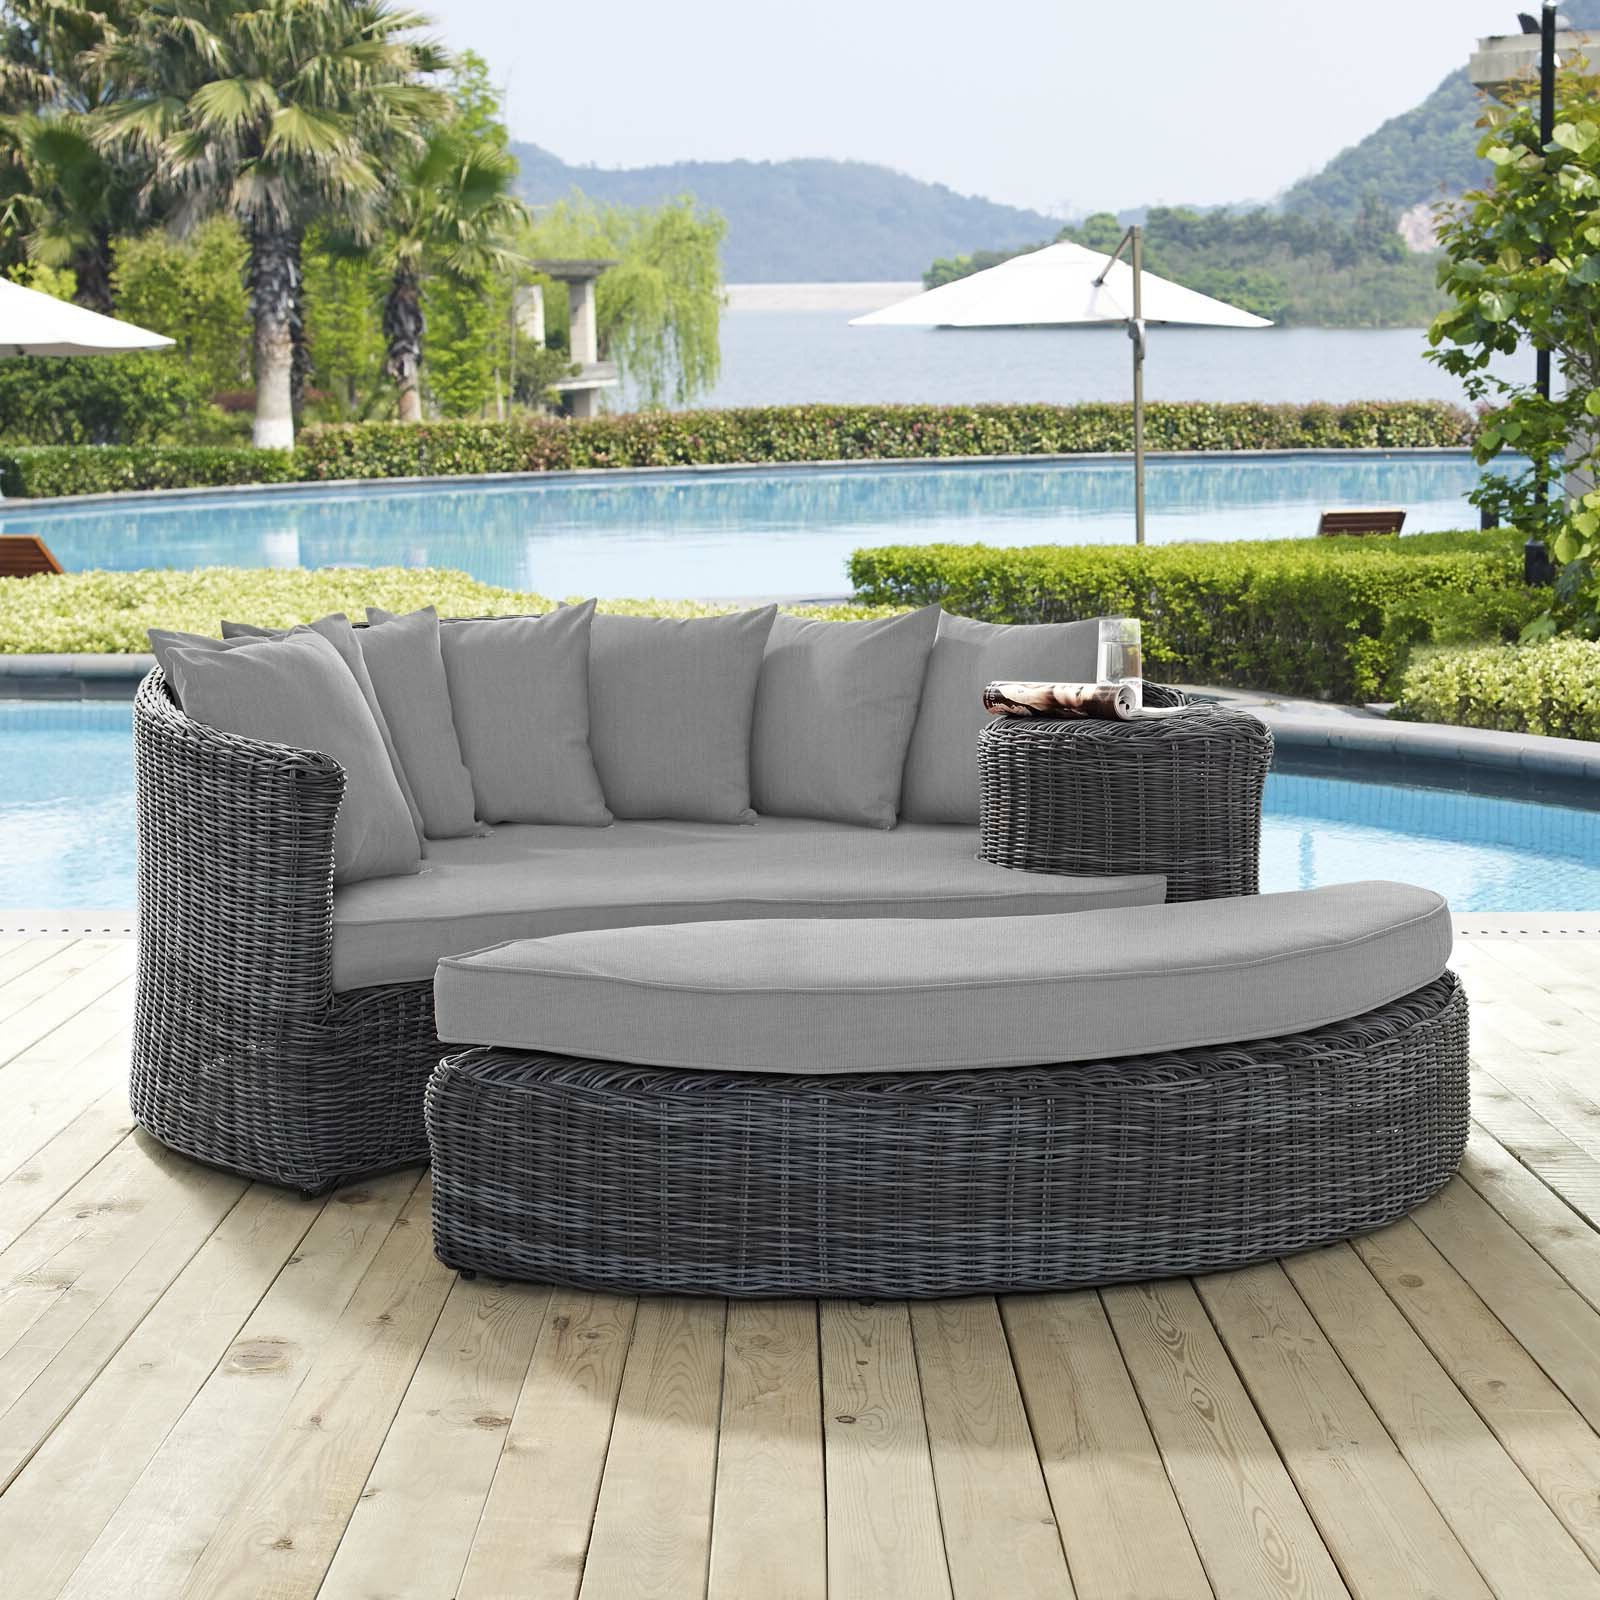 Hatley Patio Daybeds With Cushions With Regard To 2019 Keiran Patio Daybed With Cushions (Gallery 9 of 20)